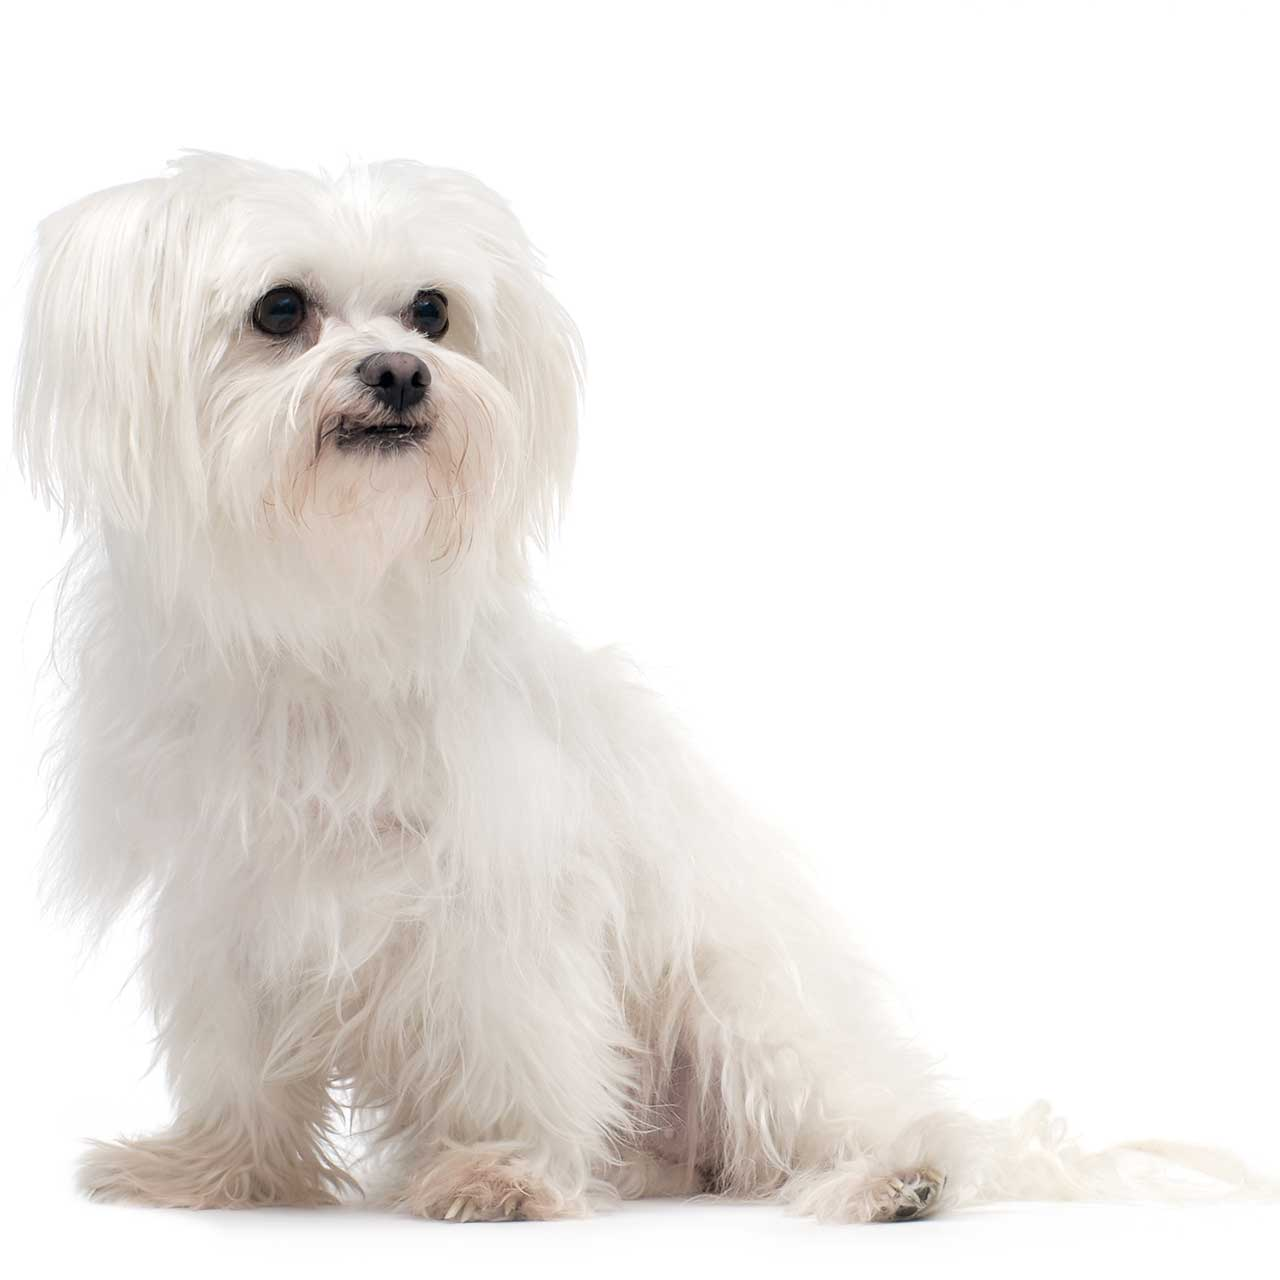 Maltese Dog Breed » Information, Pictures, & More